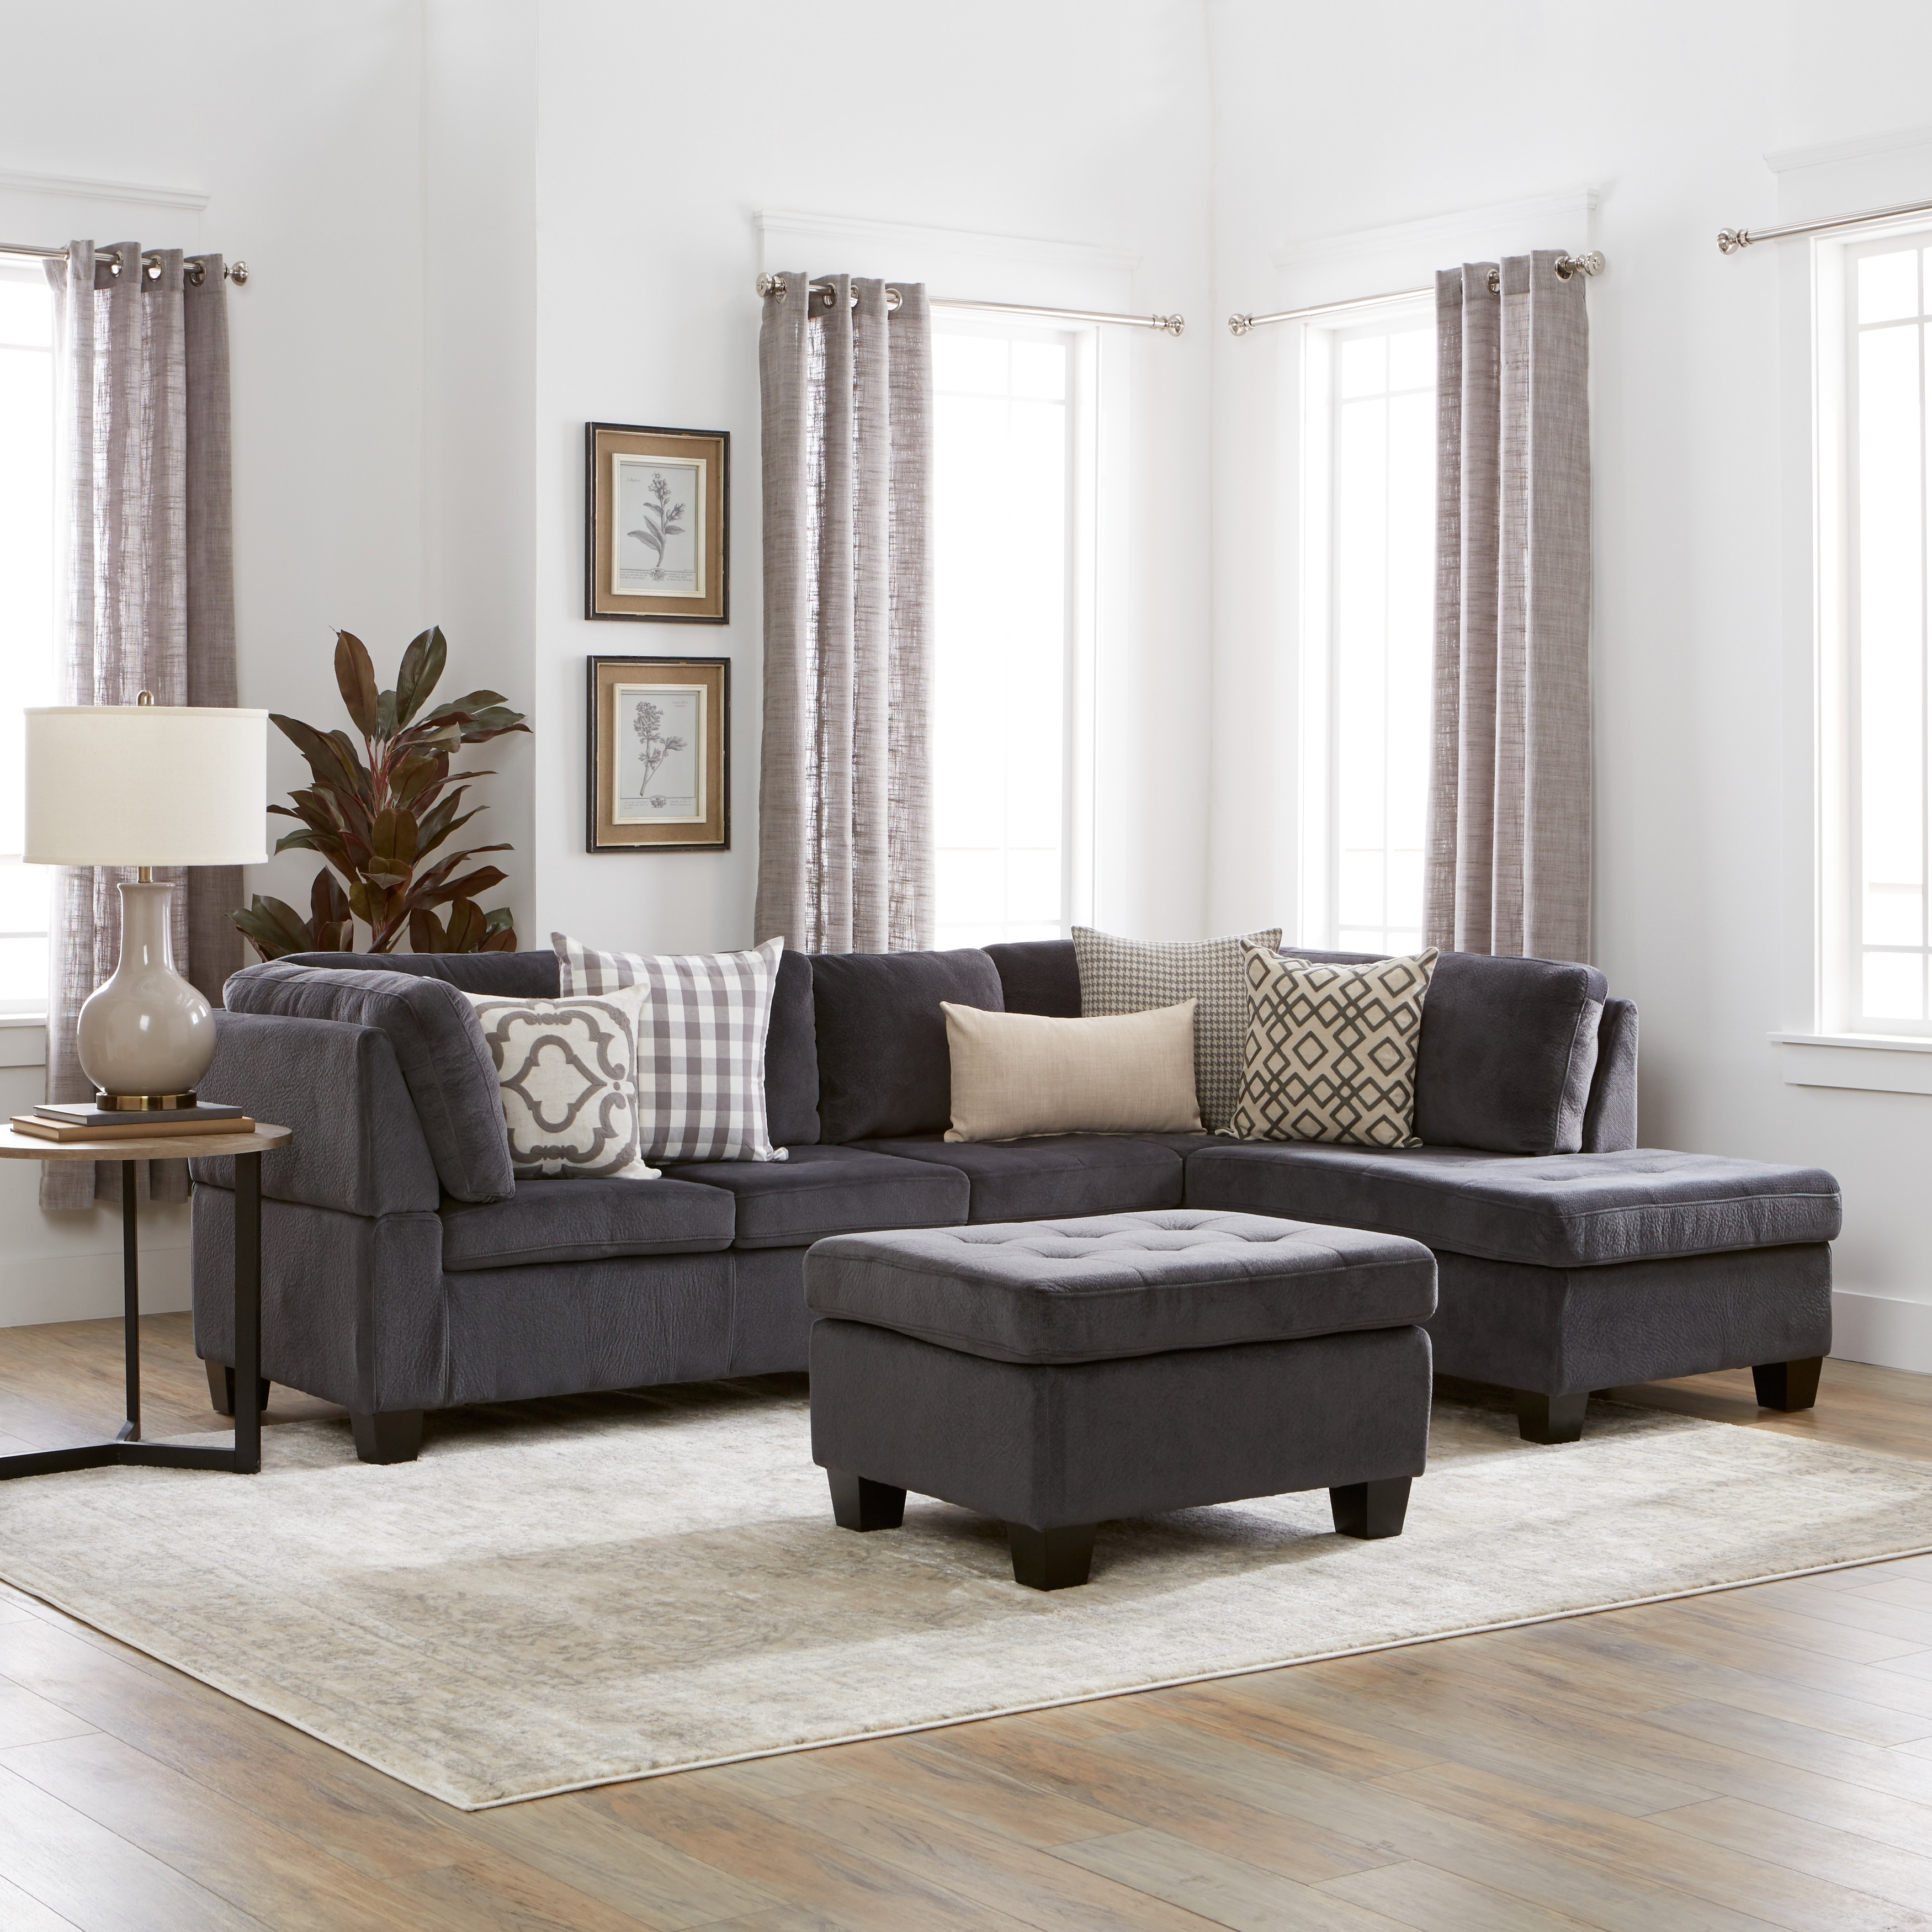 buy sofas couches sale online at overstock com our best living rh overstock com sofas and couches for sale in durban sofas and couches for sale in durban